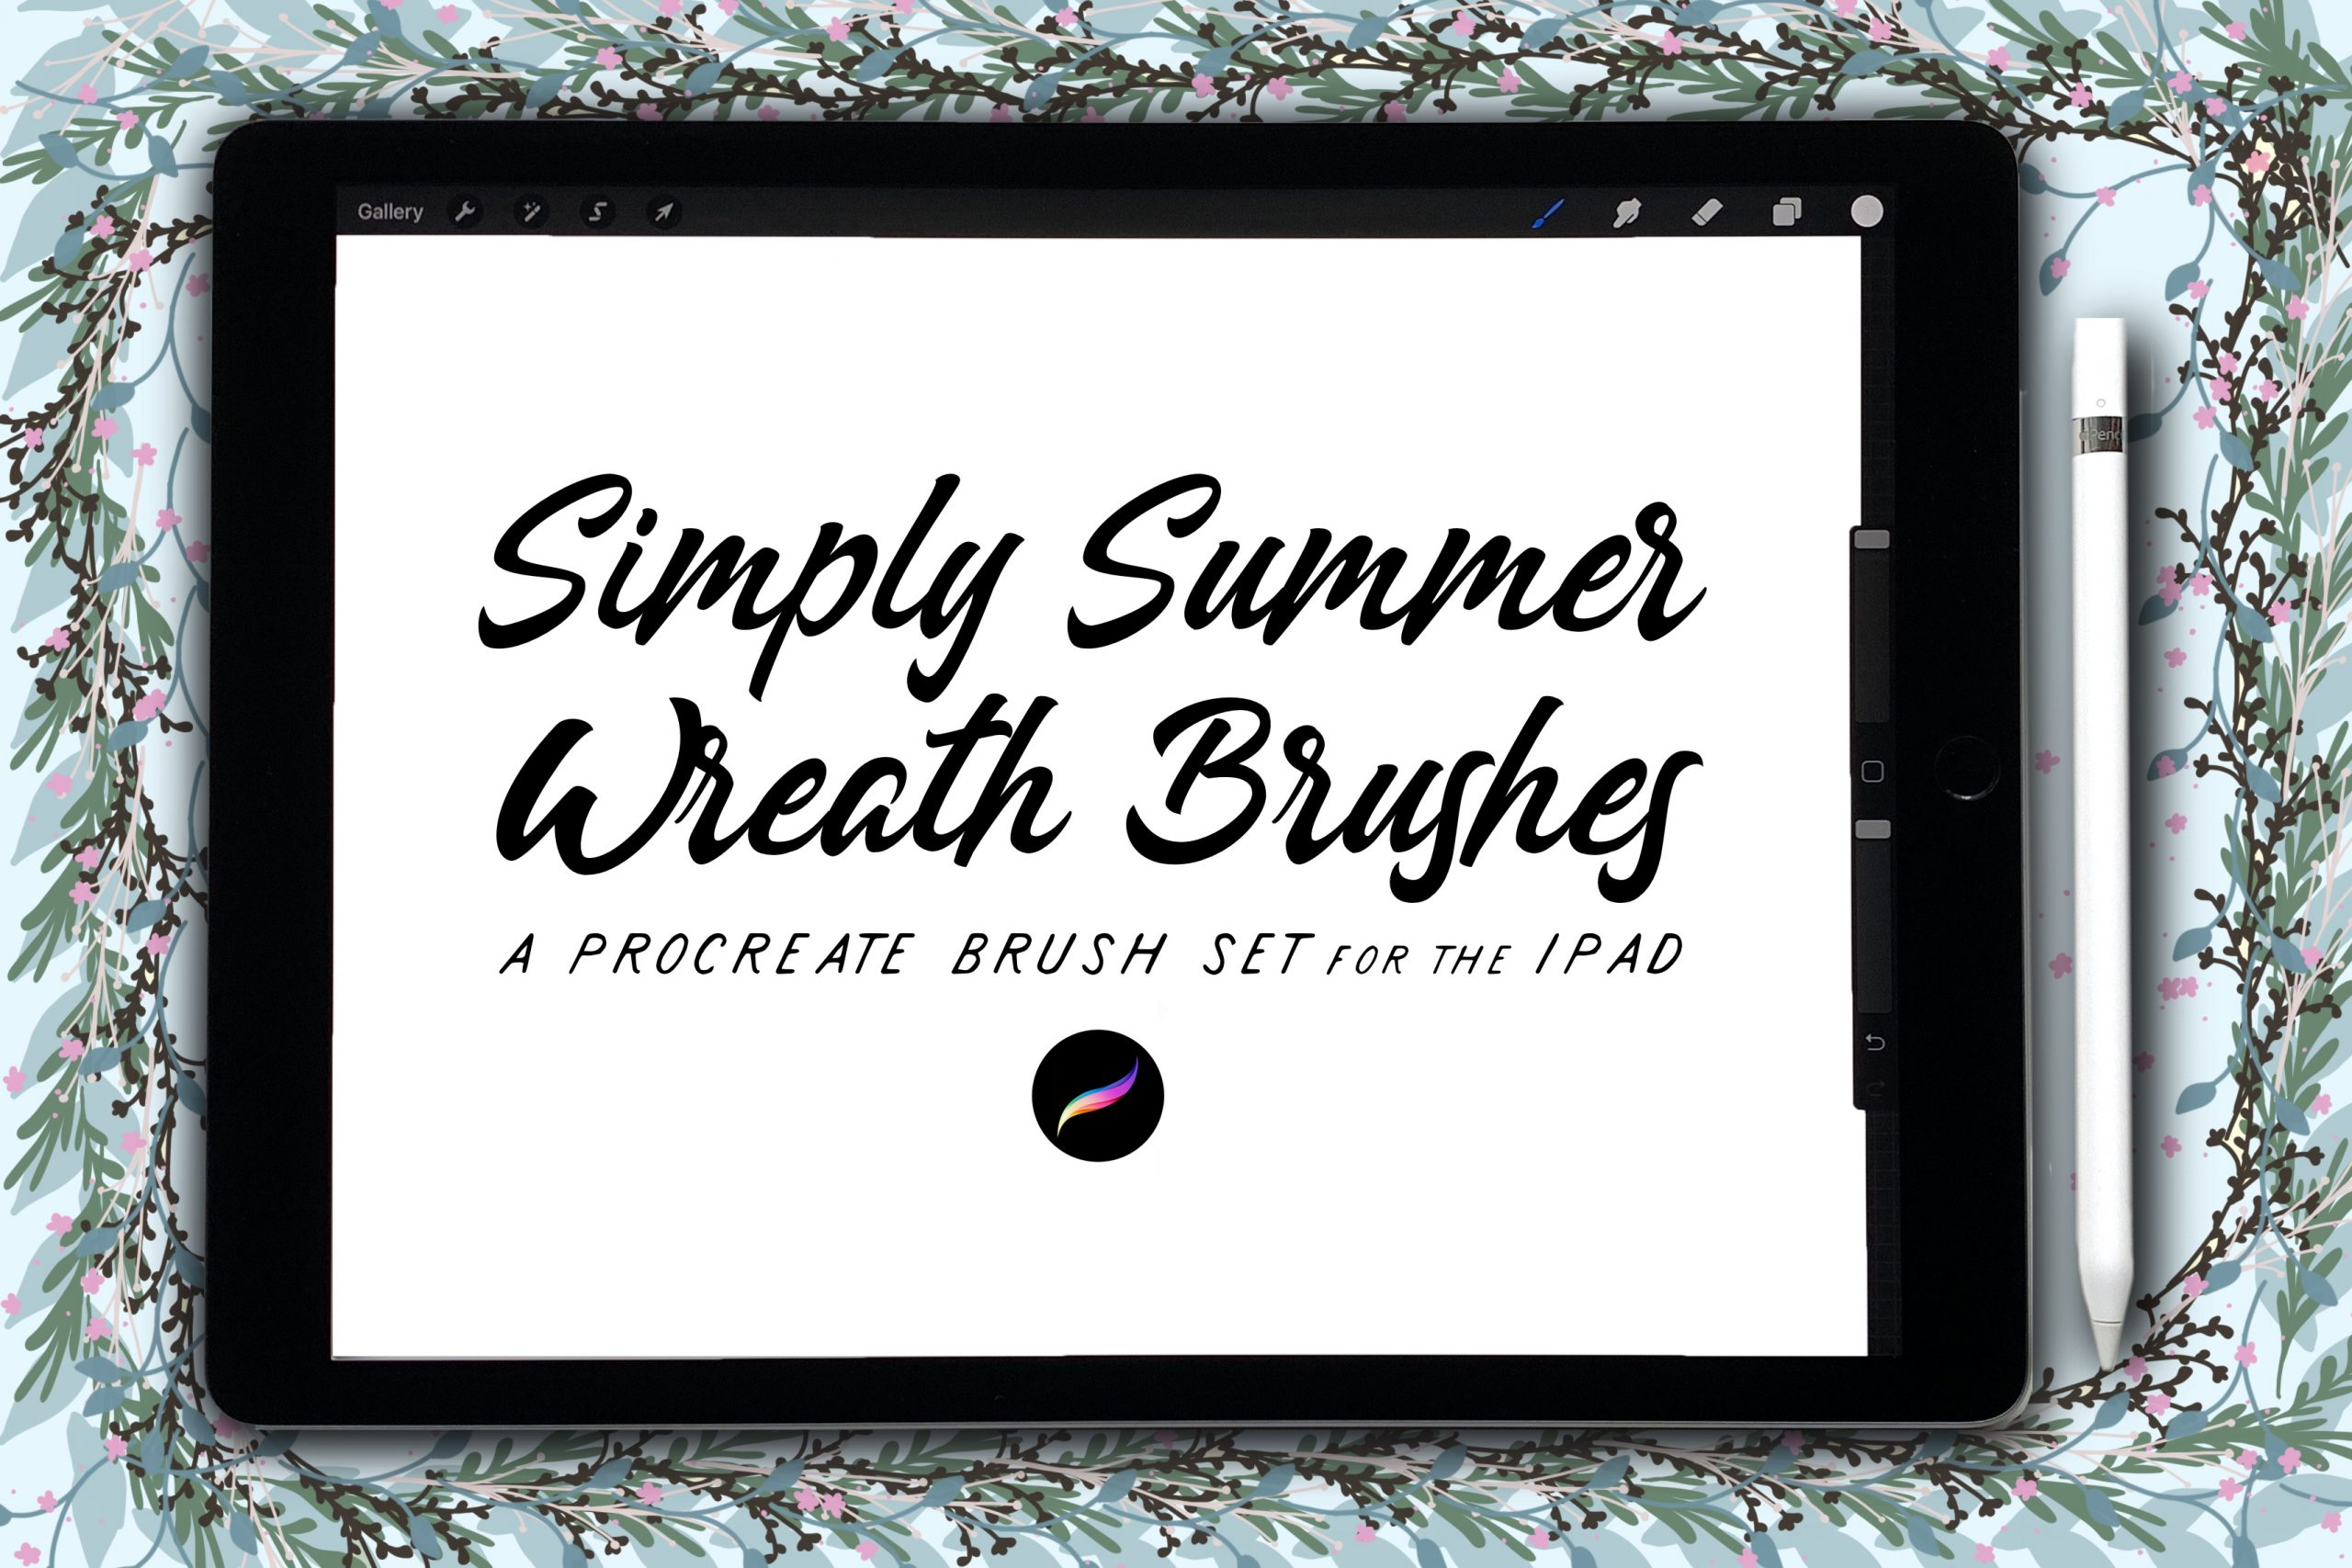 Simply Summer Wreath Brushes